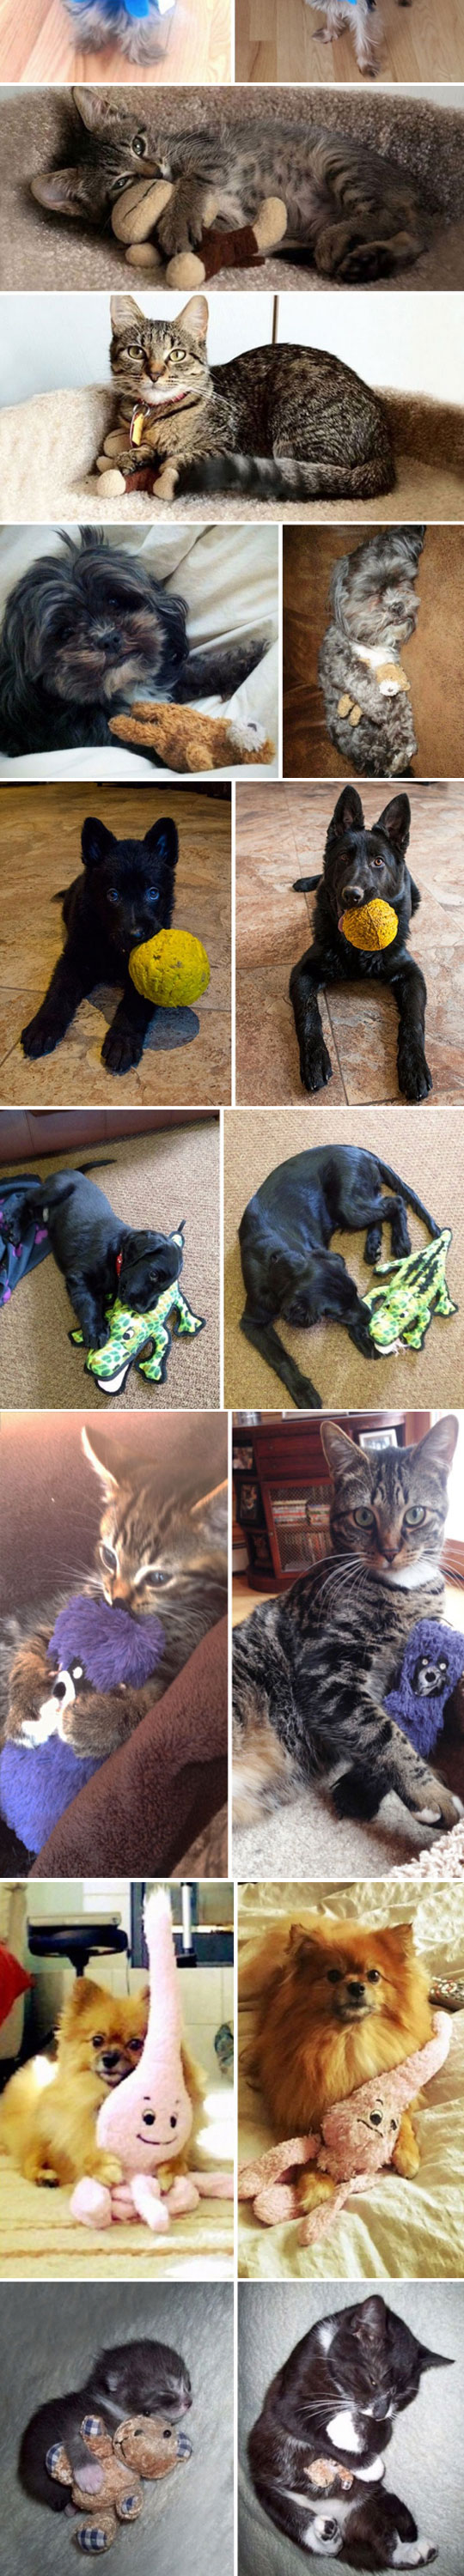 cute-pets-dogs-cats-sleeping-toys